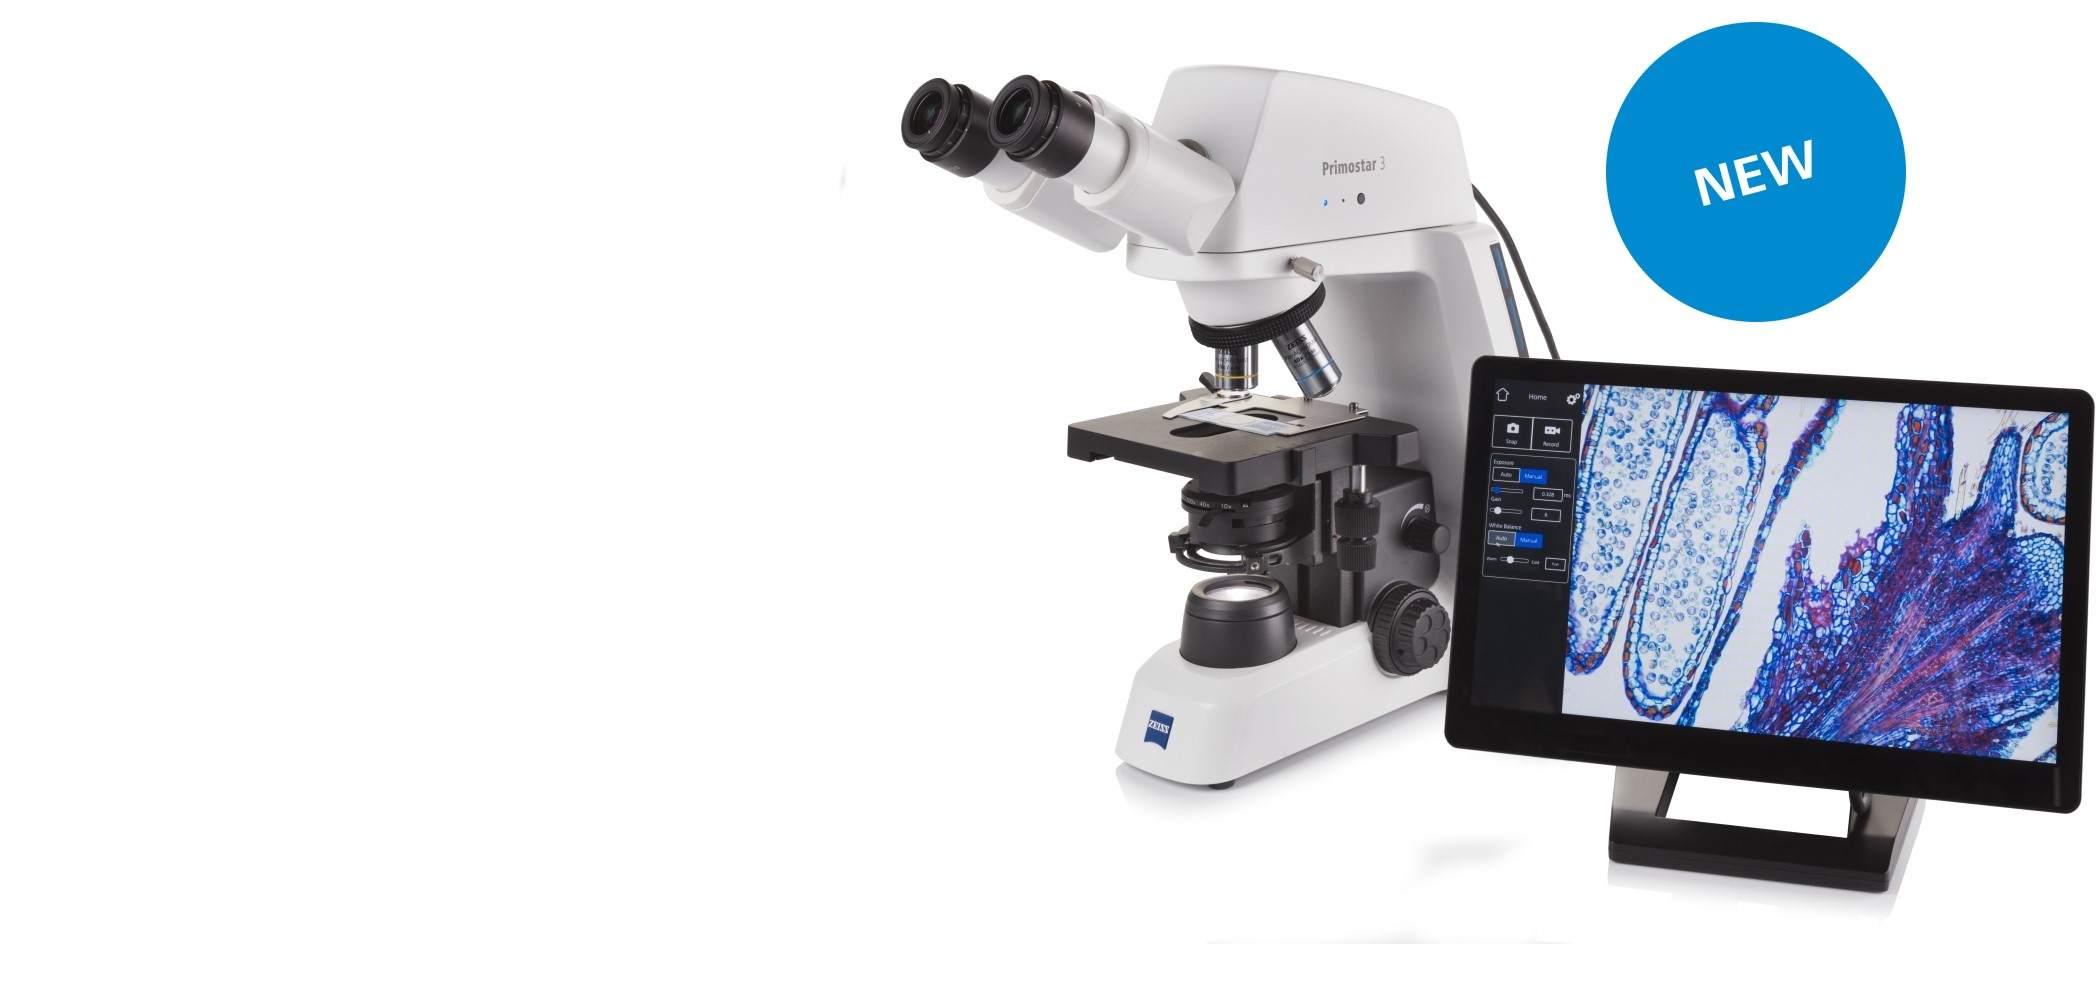 Your robust, yet compact microscope for digital teaching and routine lab work.